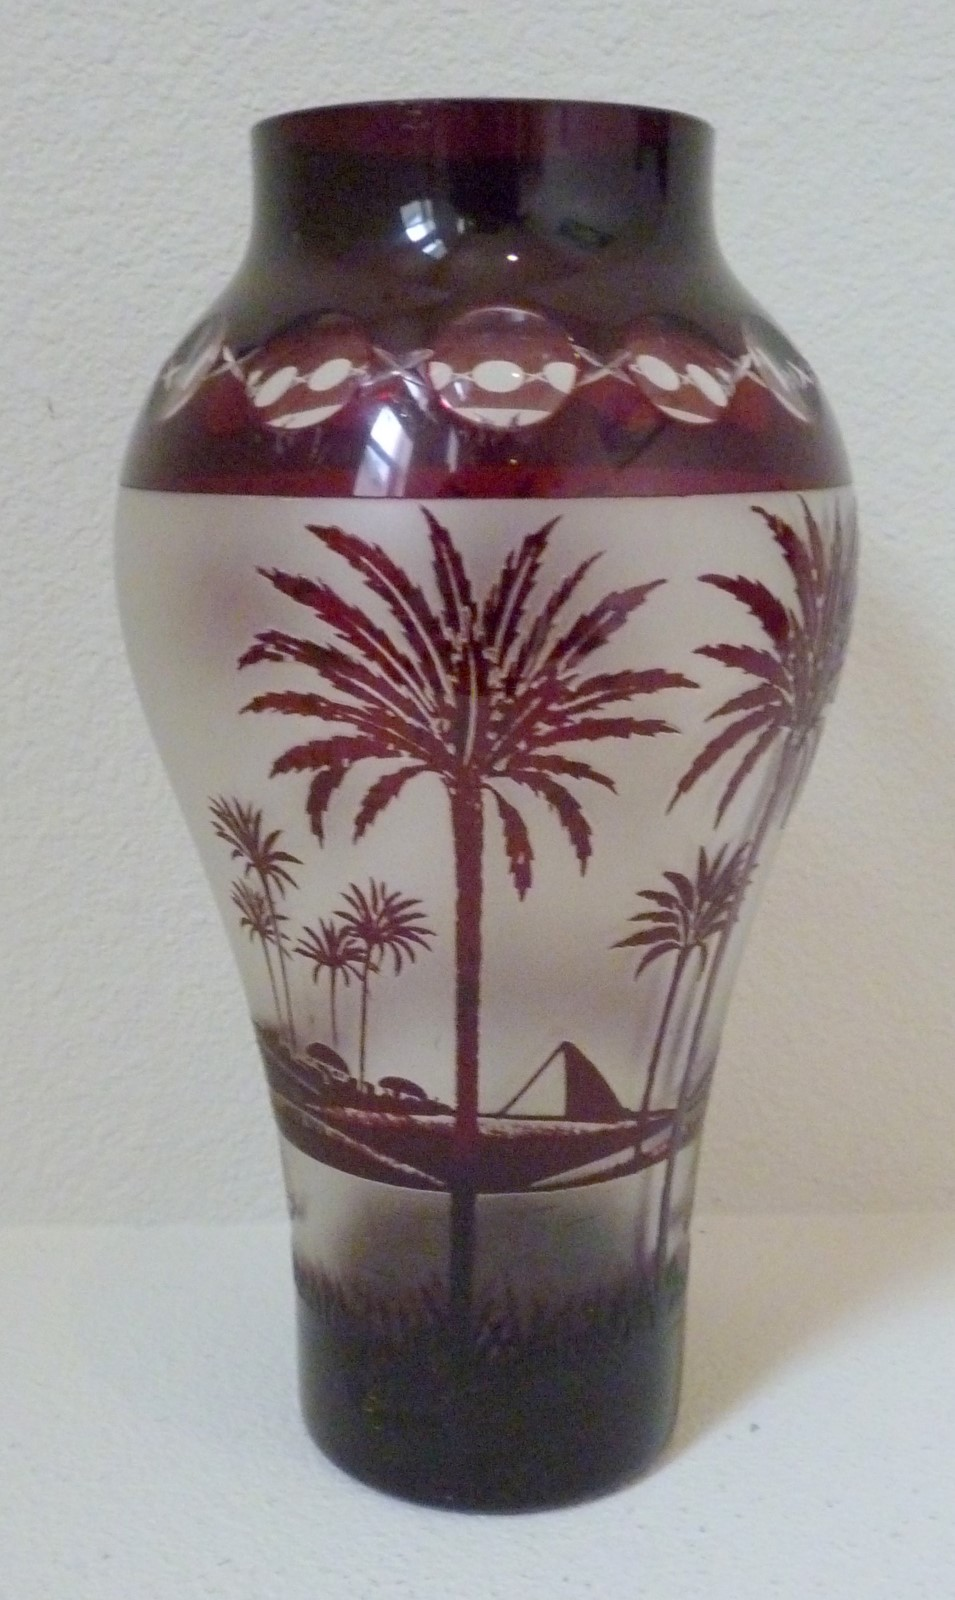 Thegildedcurio kralik cameo glass vase lamp base with 850 kralik cameo glass vase lamp base with palm trees fire polished hole in base reviewsmspy